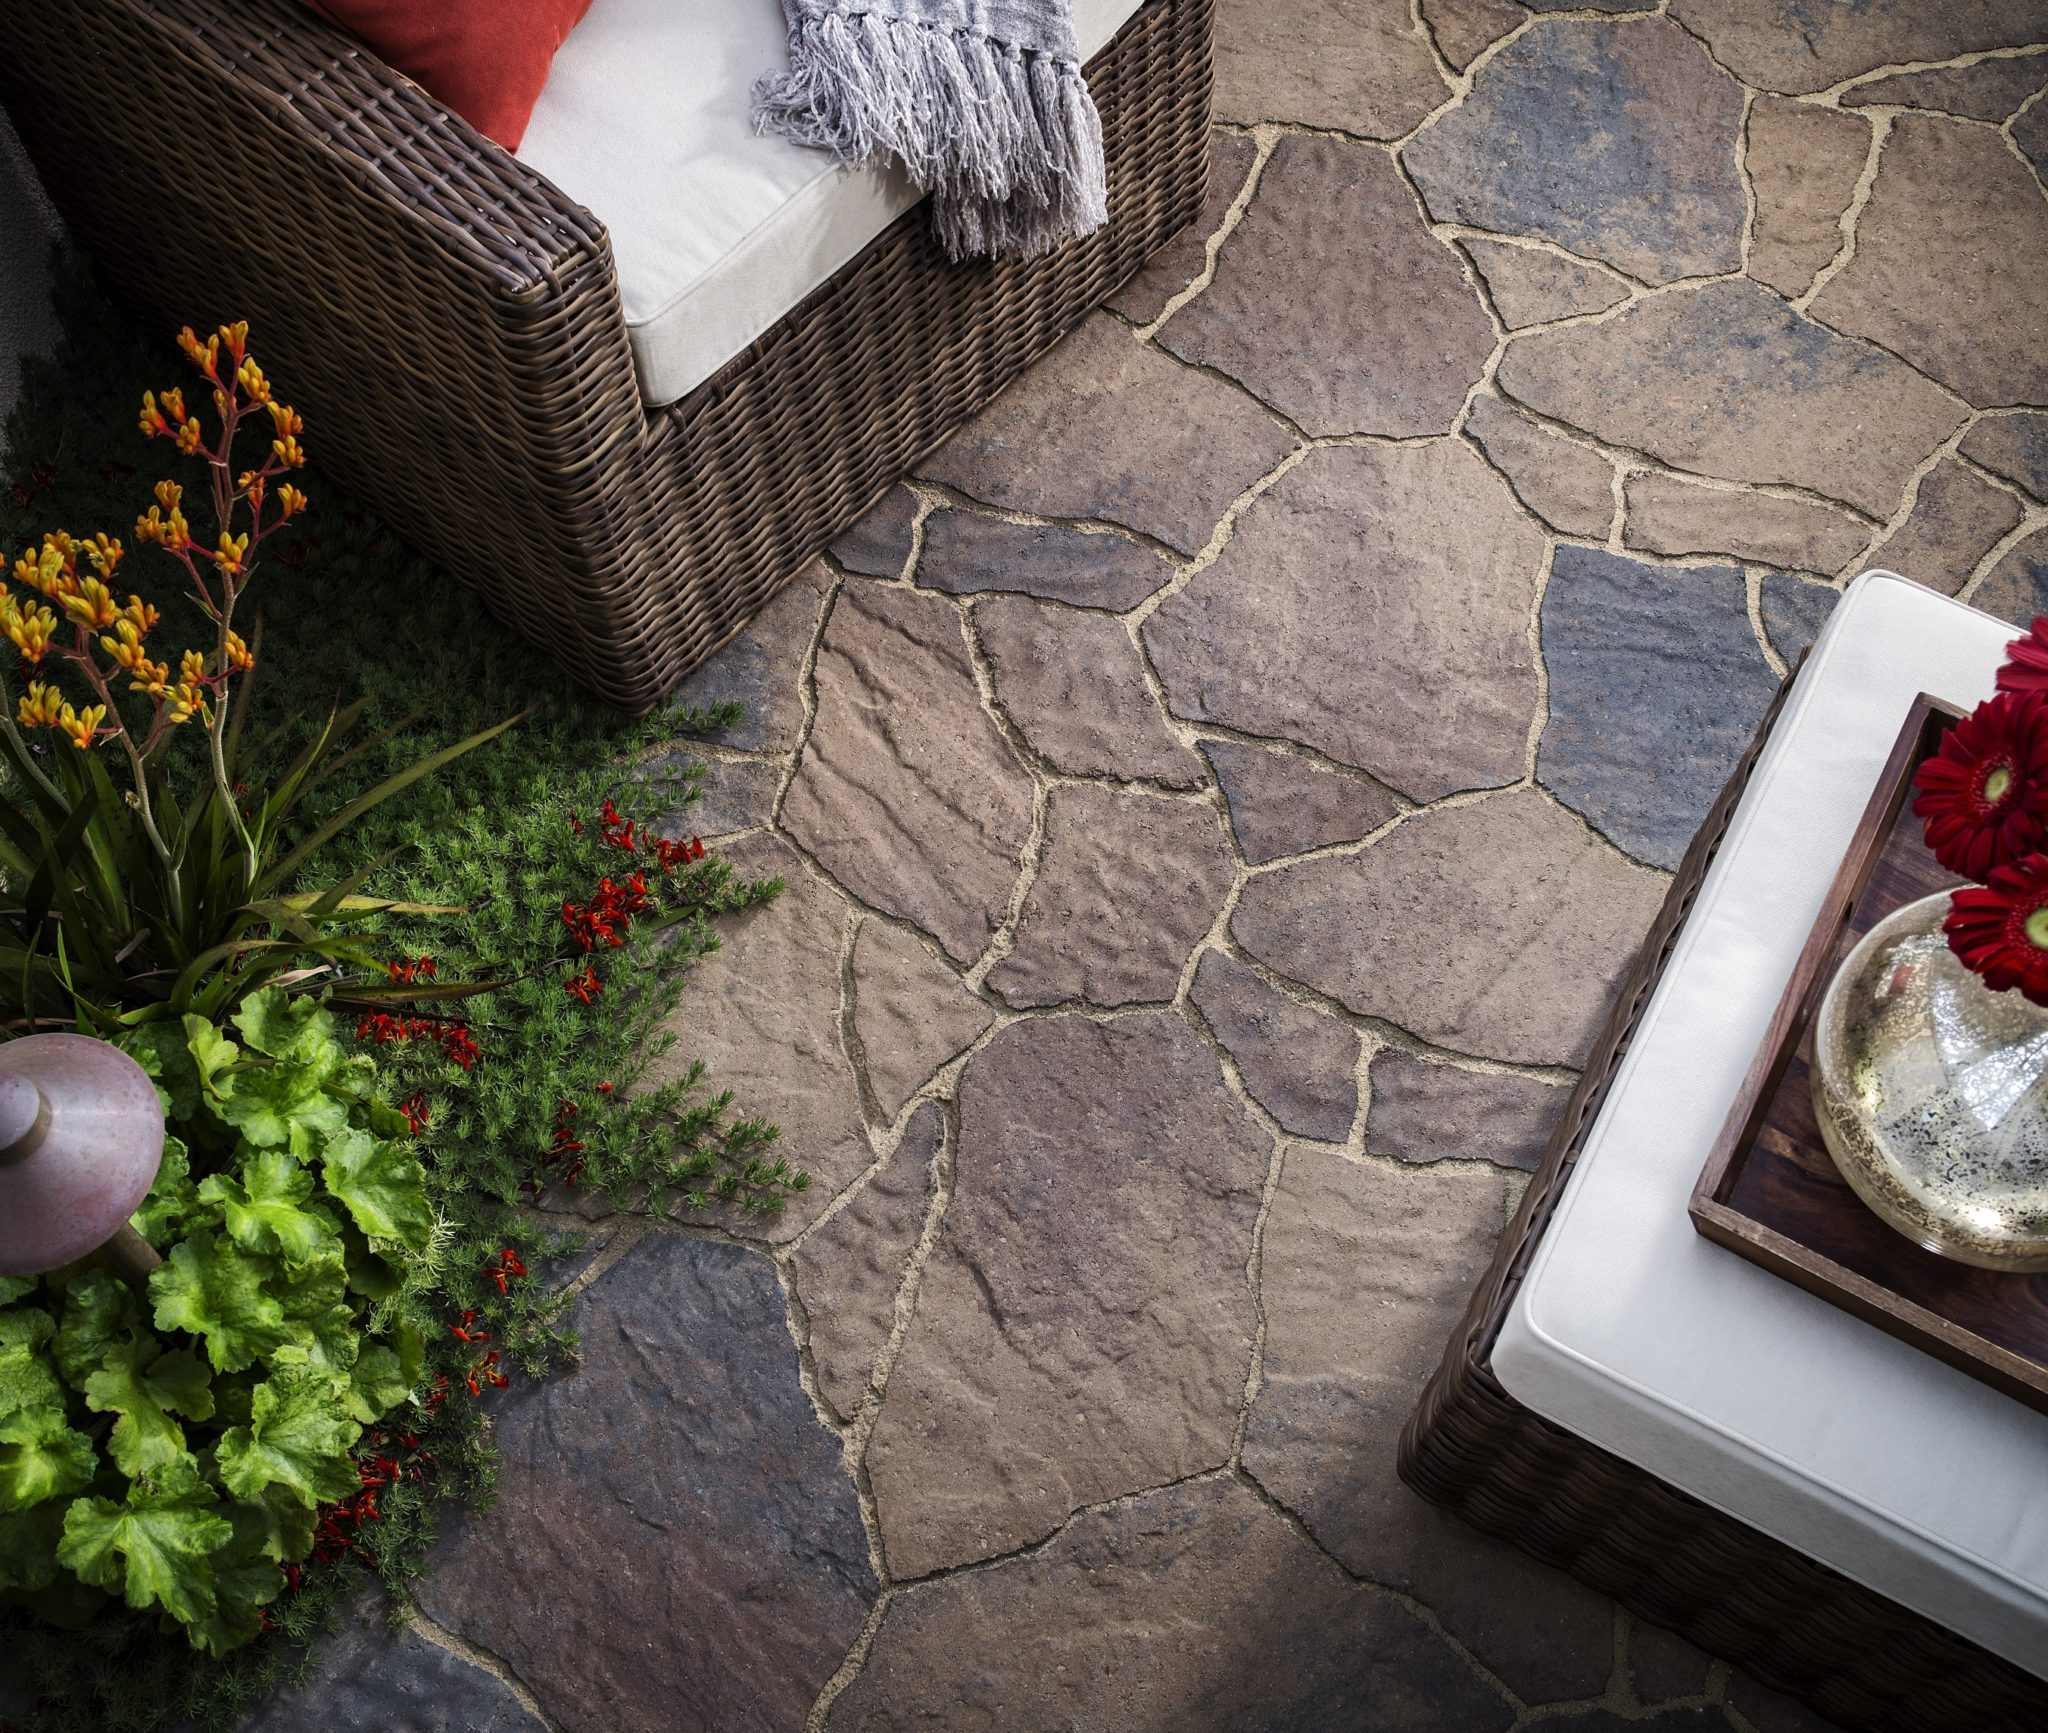 Belgard Mega-Arbel Paver Patio